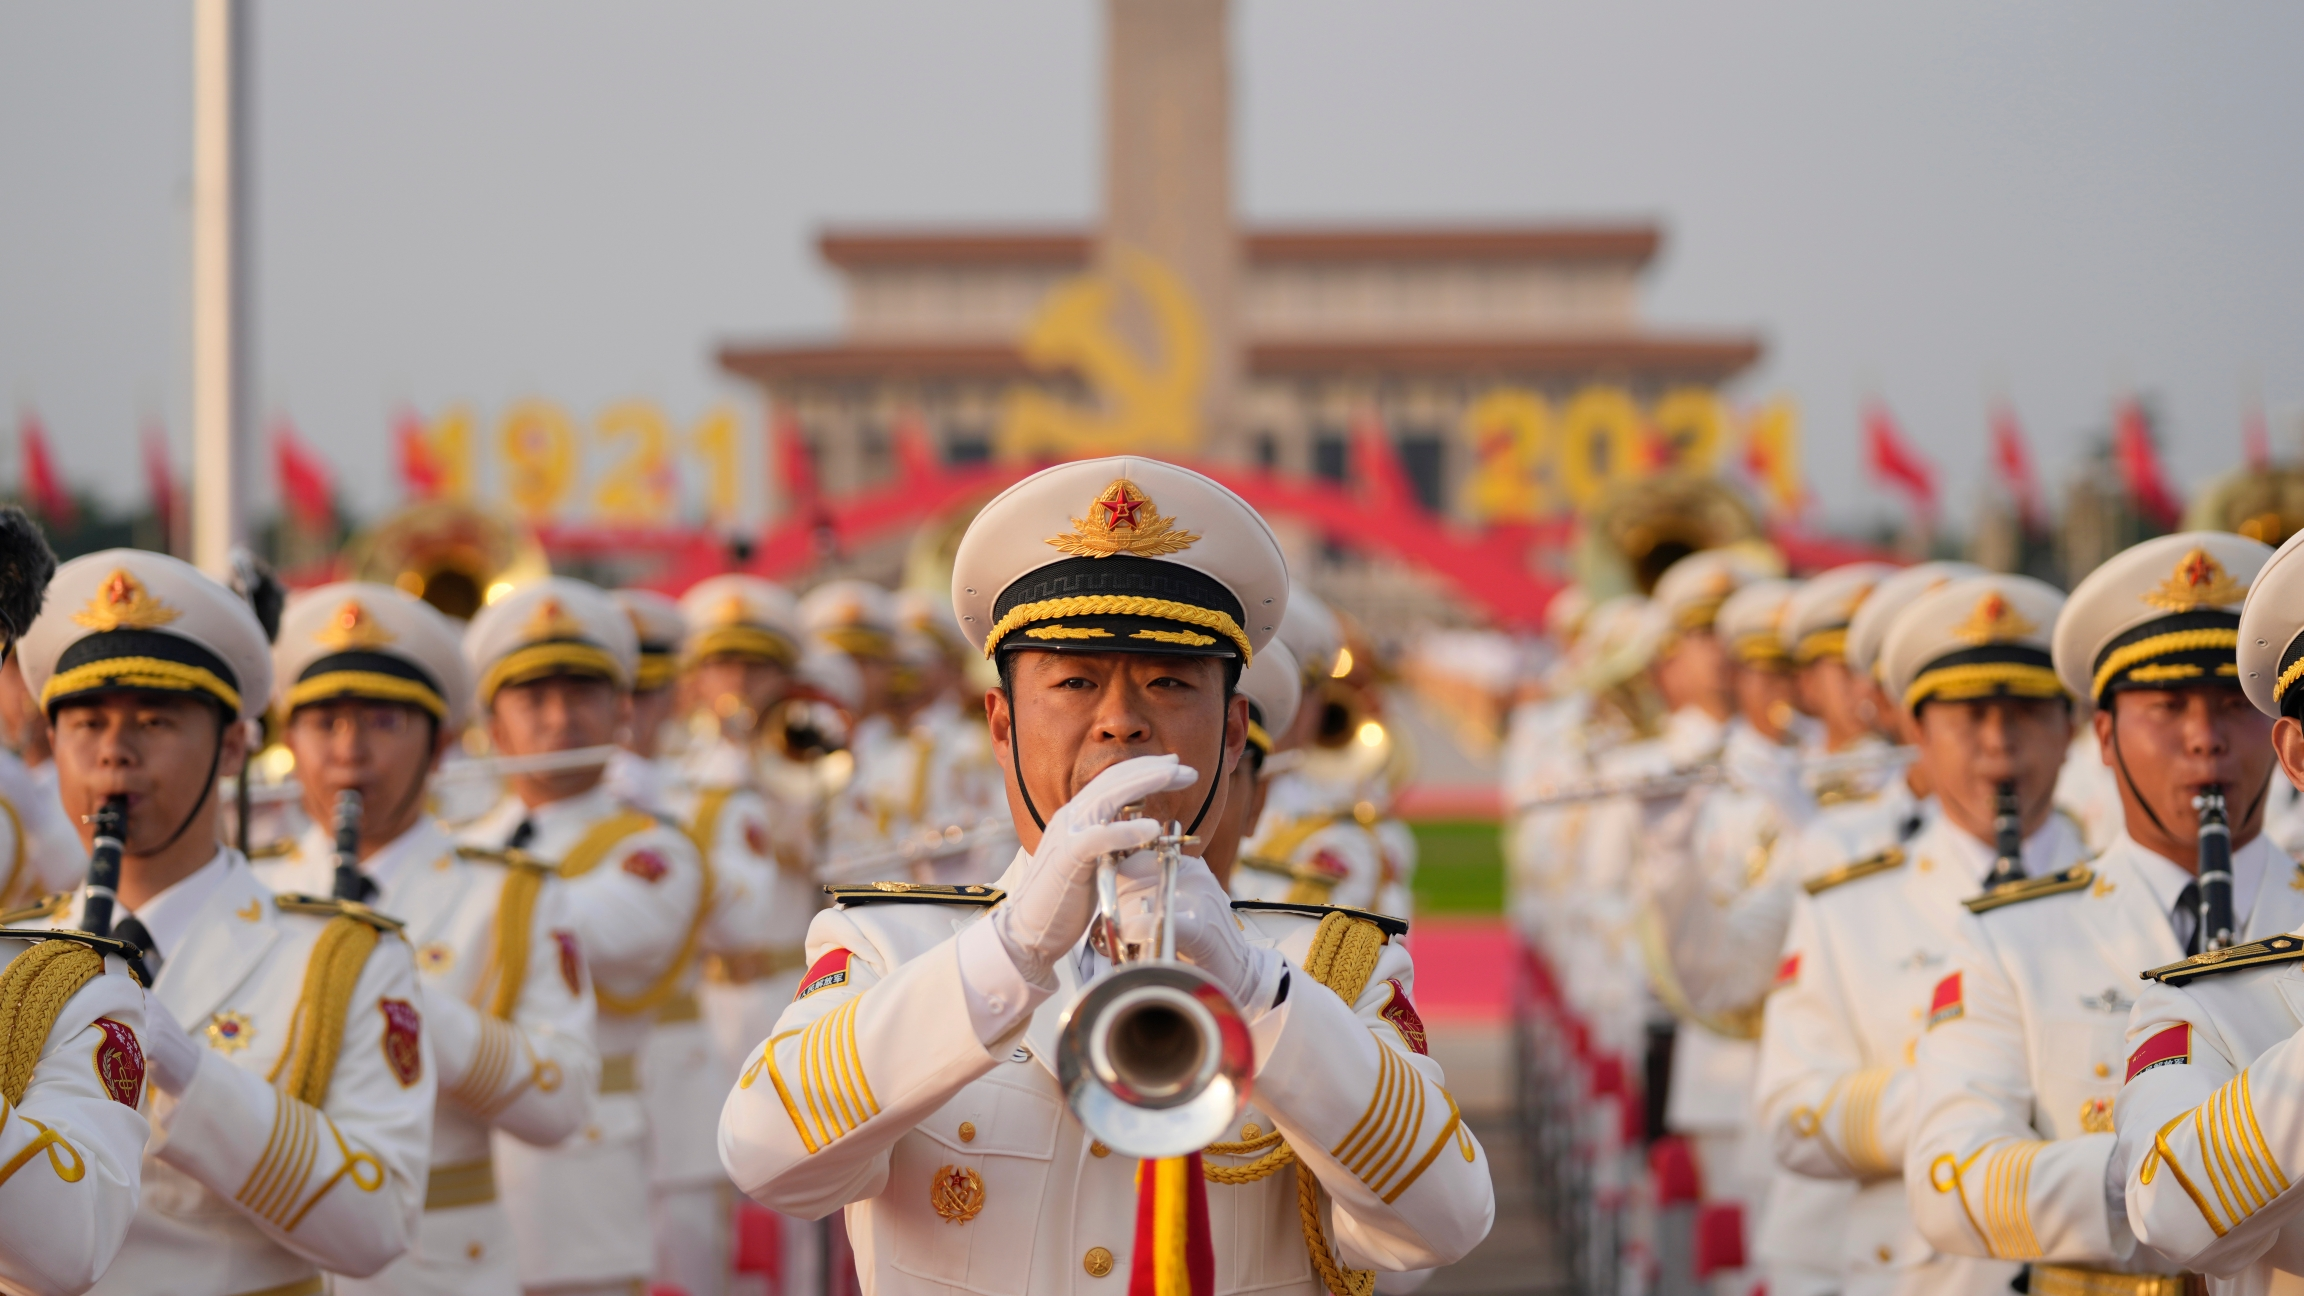 A military band rehearses for a ceremony to mark the 100th anniversary of the founding of the ruling Chinese Communist Party at Tiananmen Gate in Beijing,July 1, 2021. Chinese fighter jets, anti-submarine aircraft and combat ships conducted assault drill